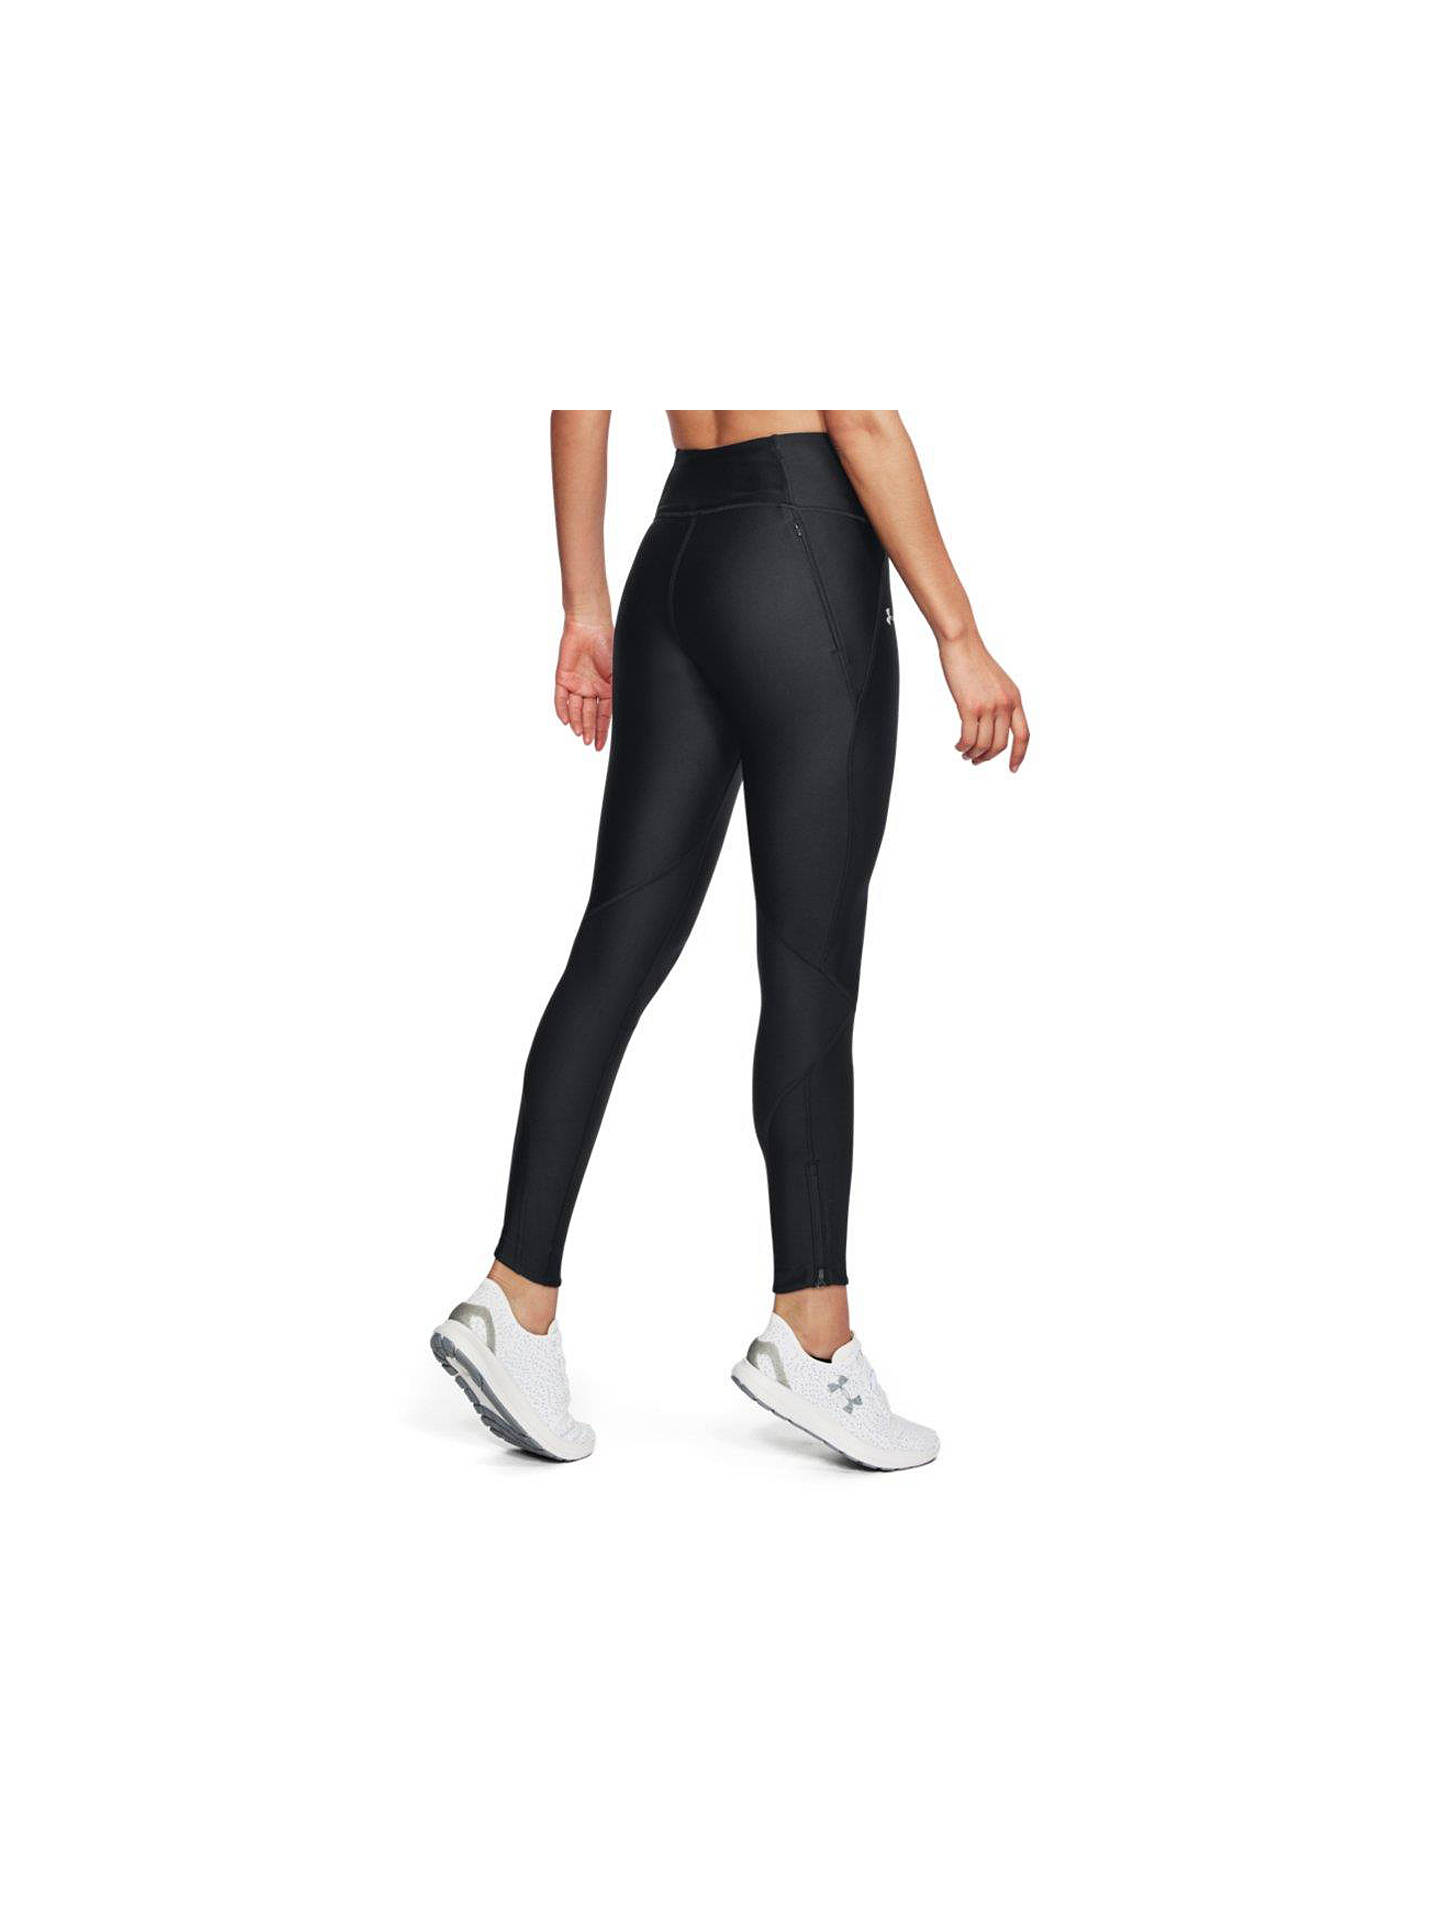 15ceee876b252 ... Buy Under Armour Fly Fast Running Leggings, Black/Reflective Silver, XS  Online at ...